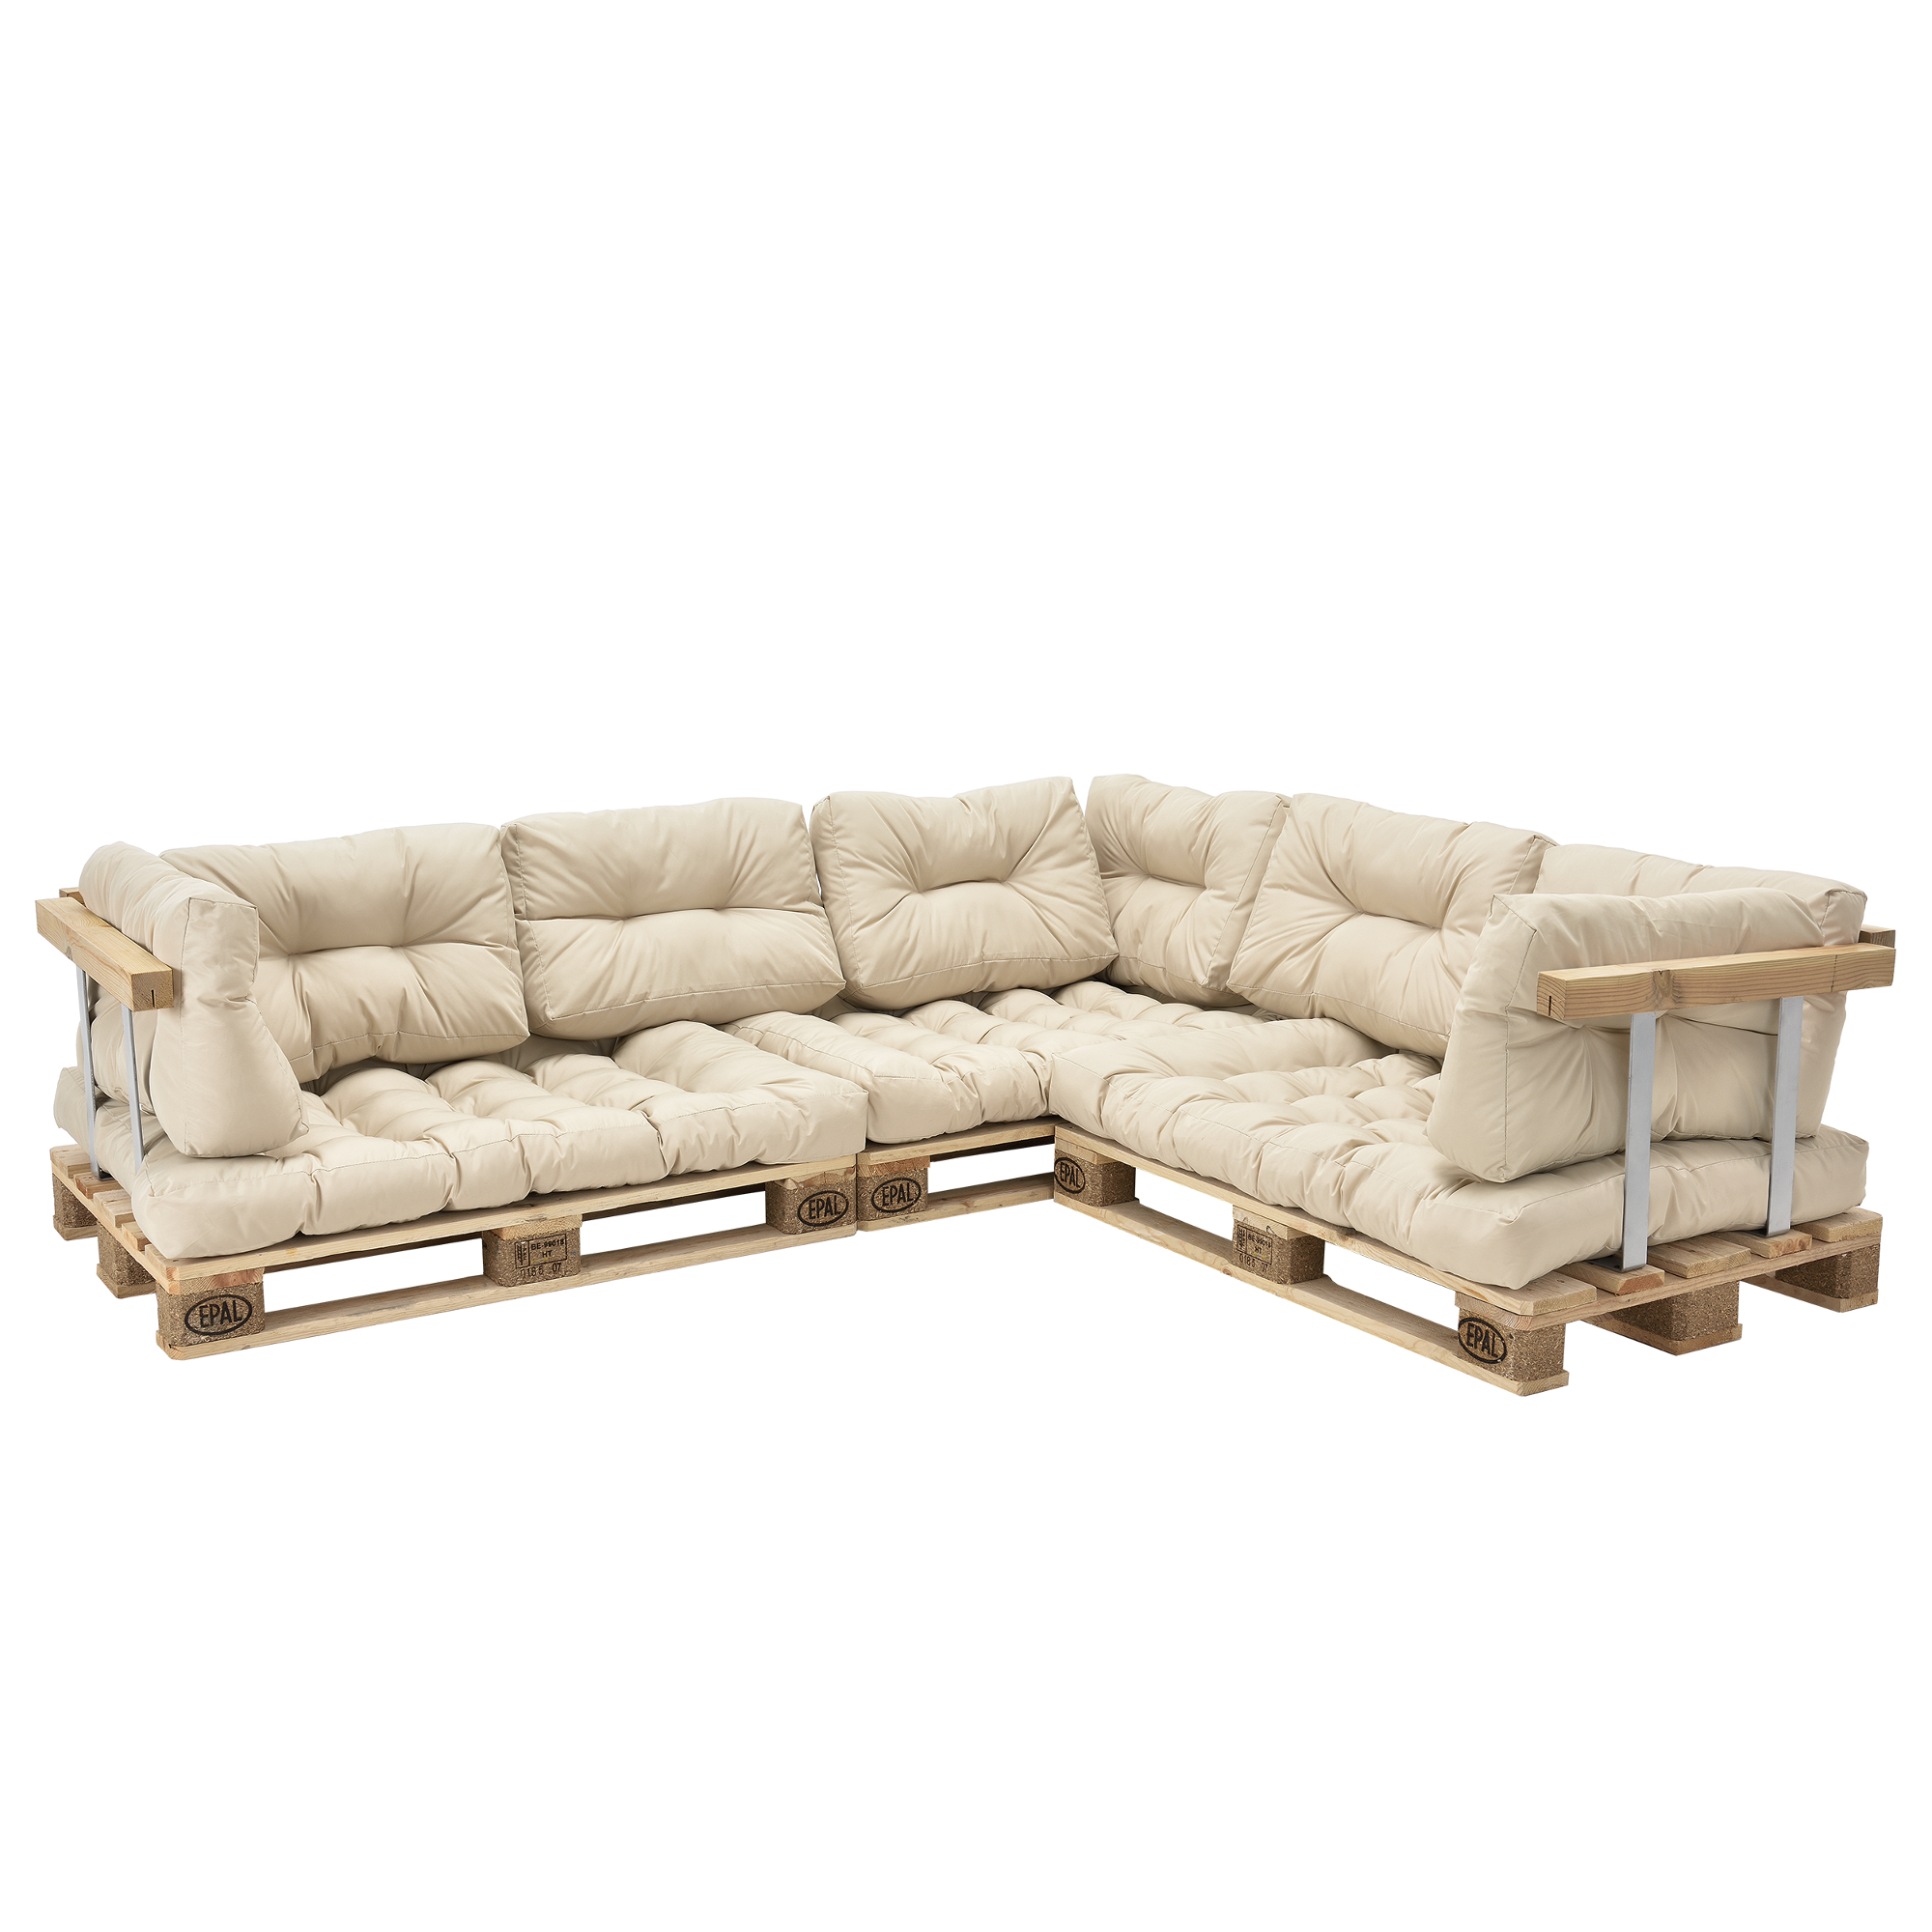 Euro Pallets Sofa Pillow Beige Corner Sofa With Pallets Pads Backrest Ebay